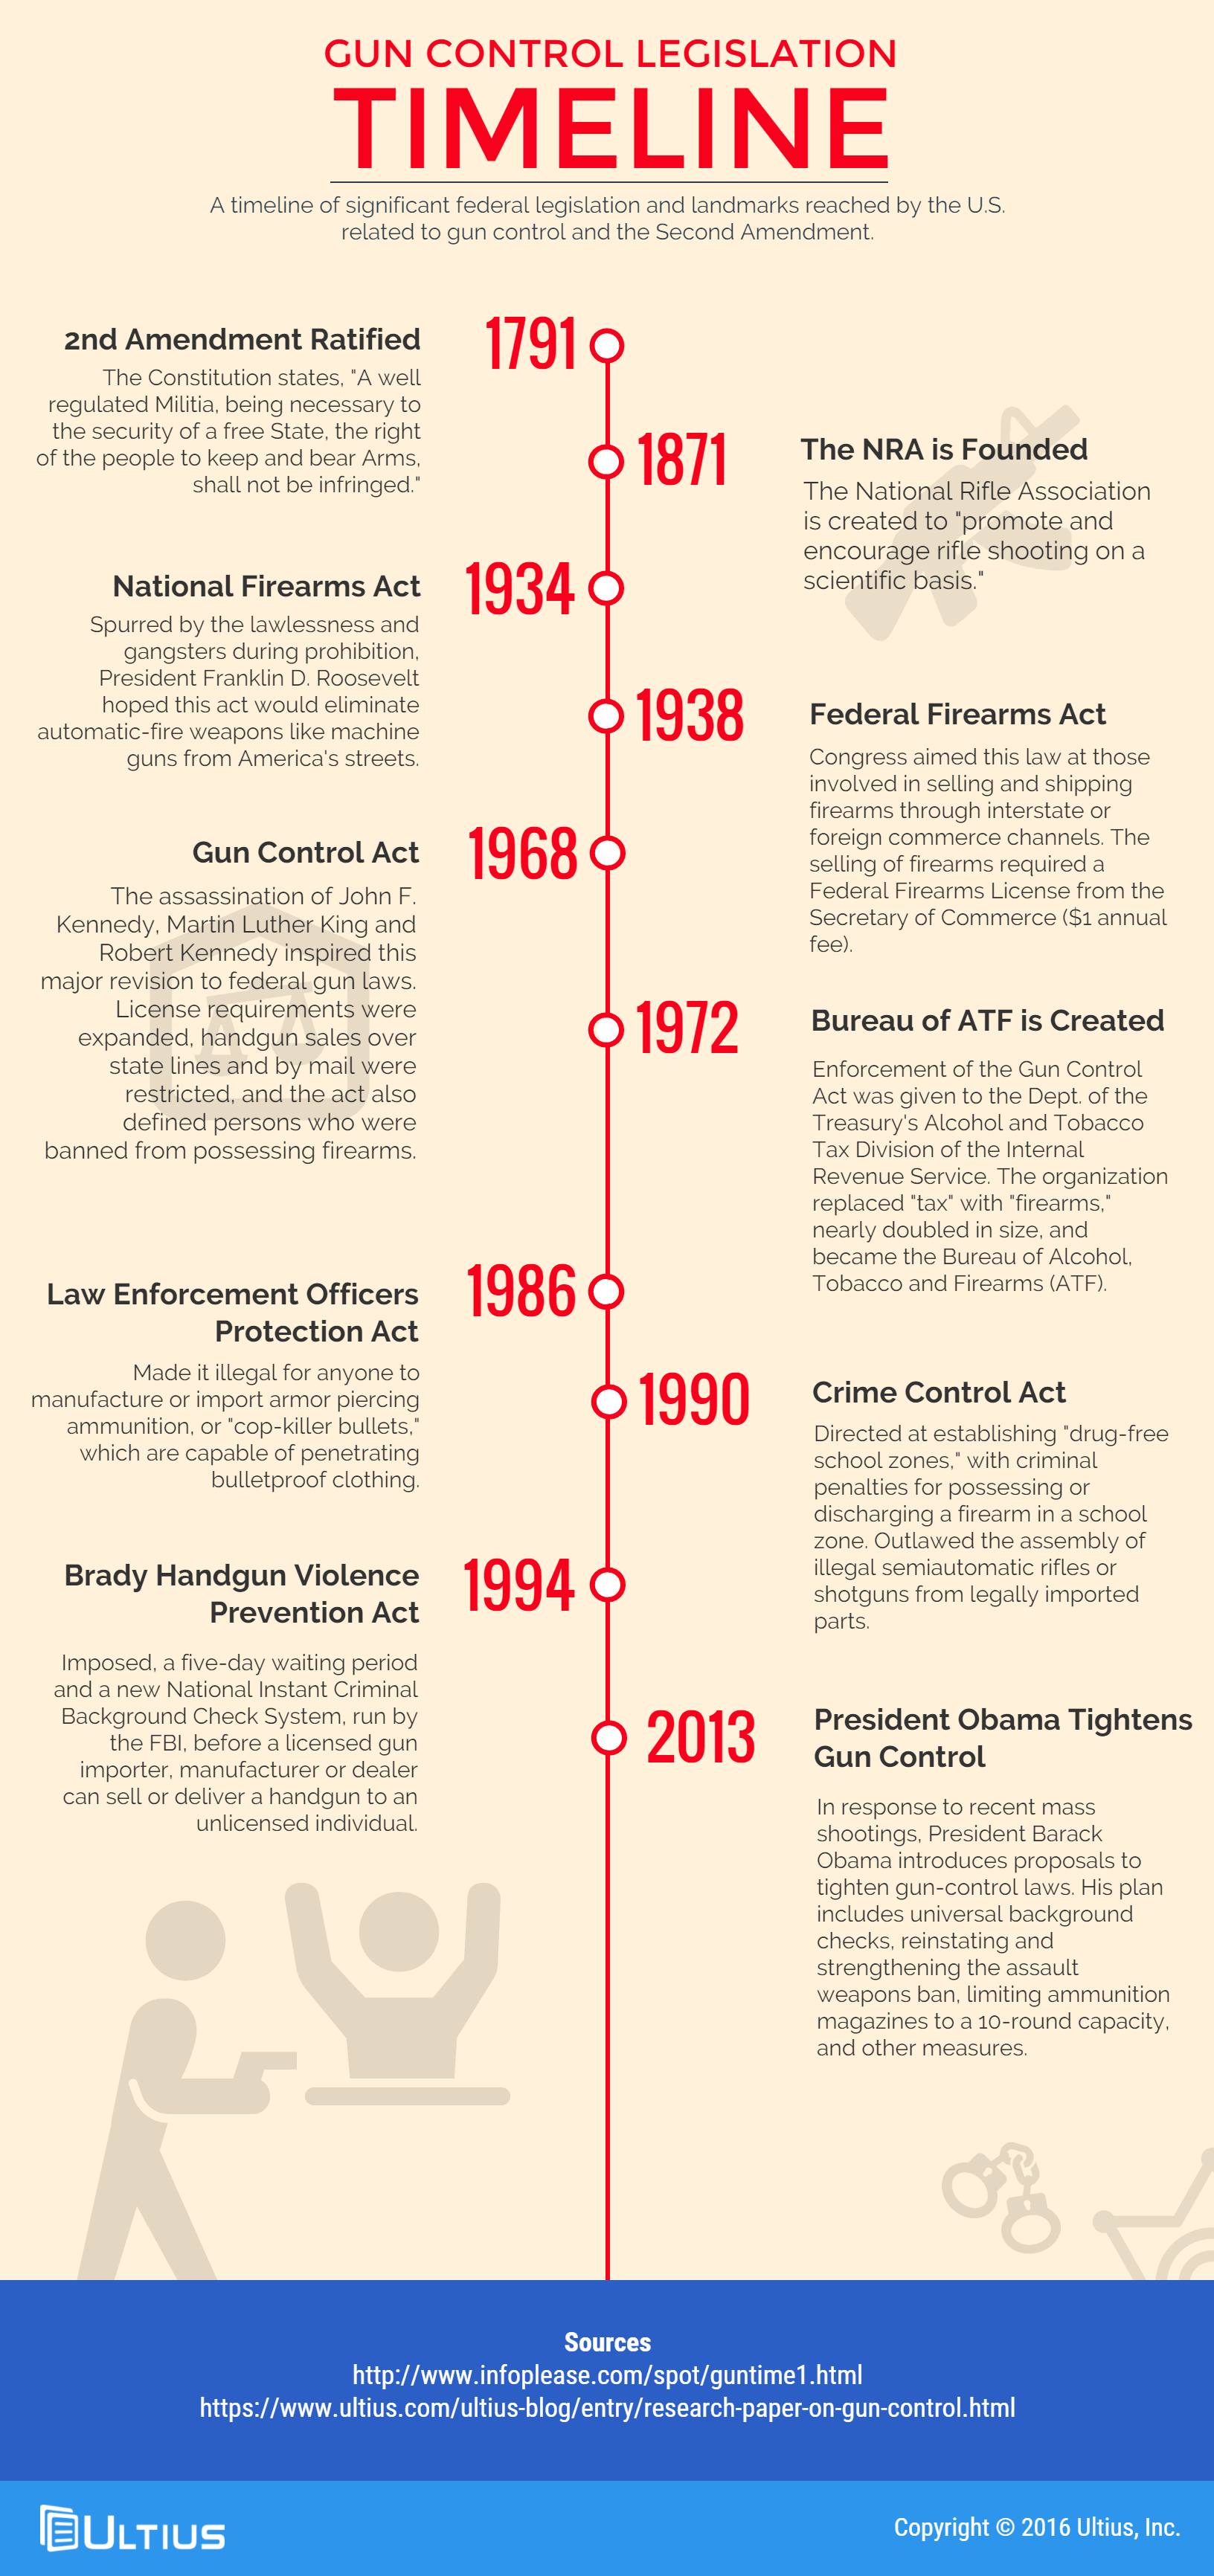 research paper on gun control infographic blog  gun control legislation timeline infographic